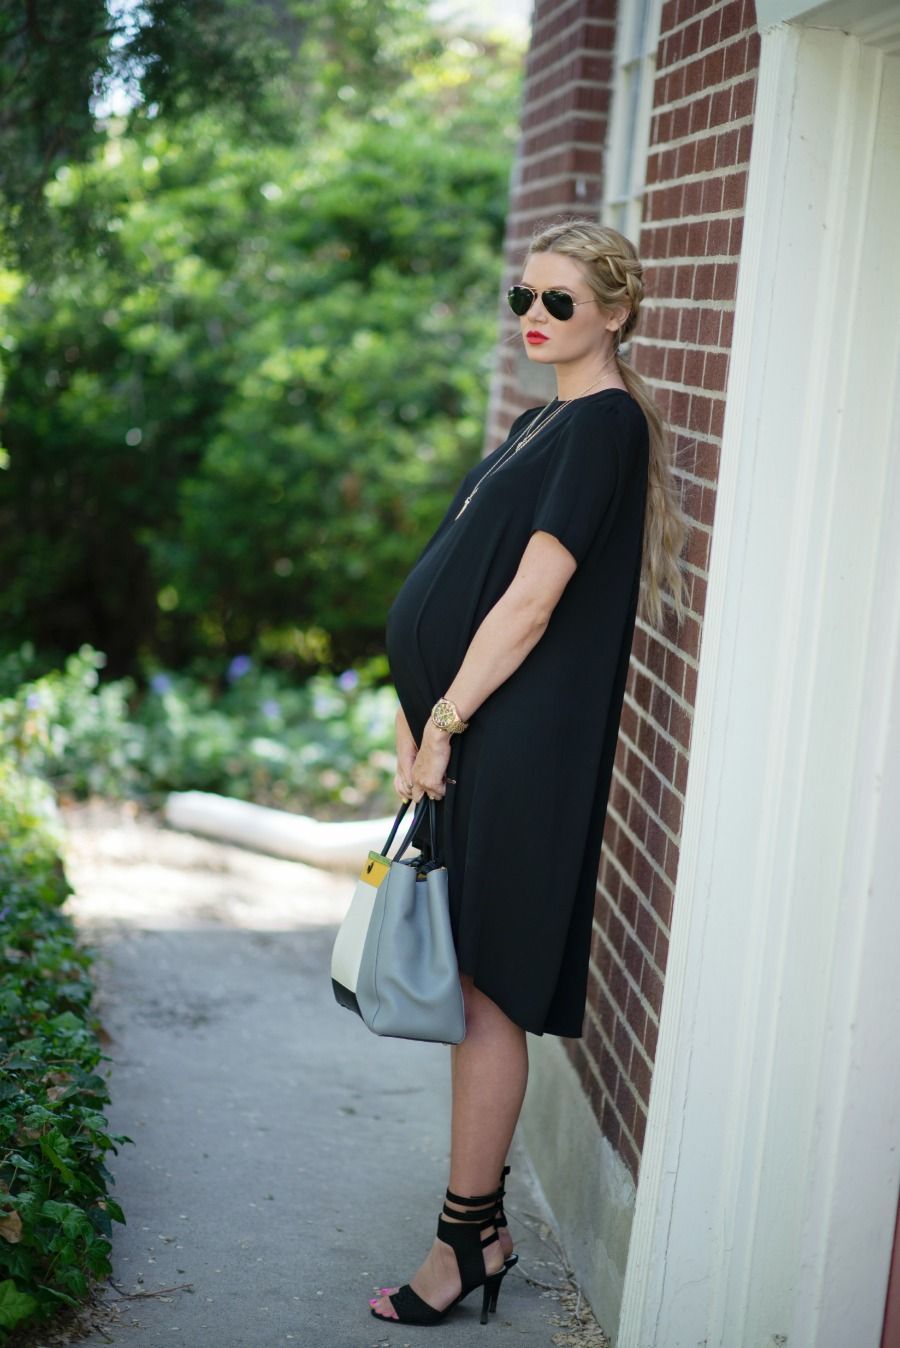 Really cute maternity style proof even pregnant you can be hot as